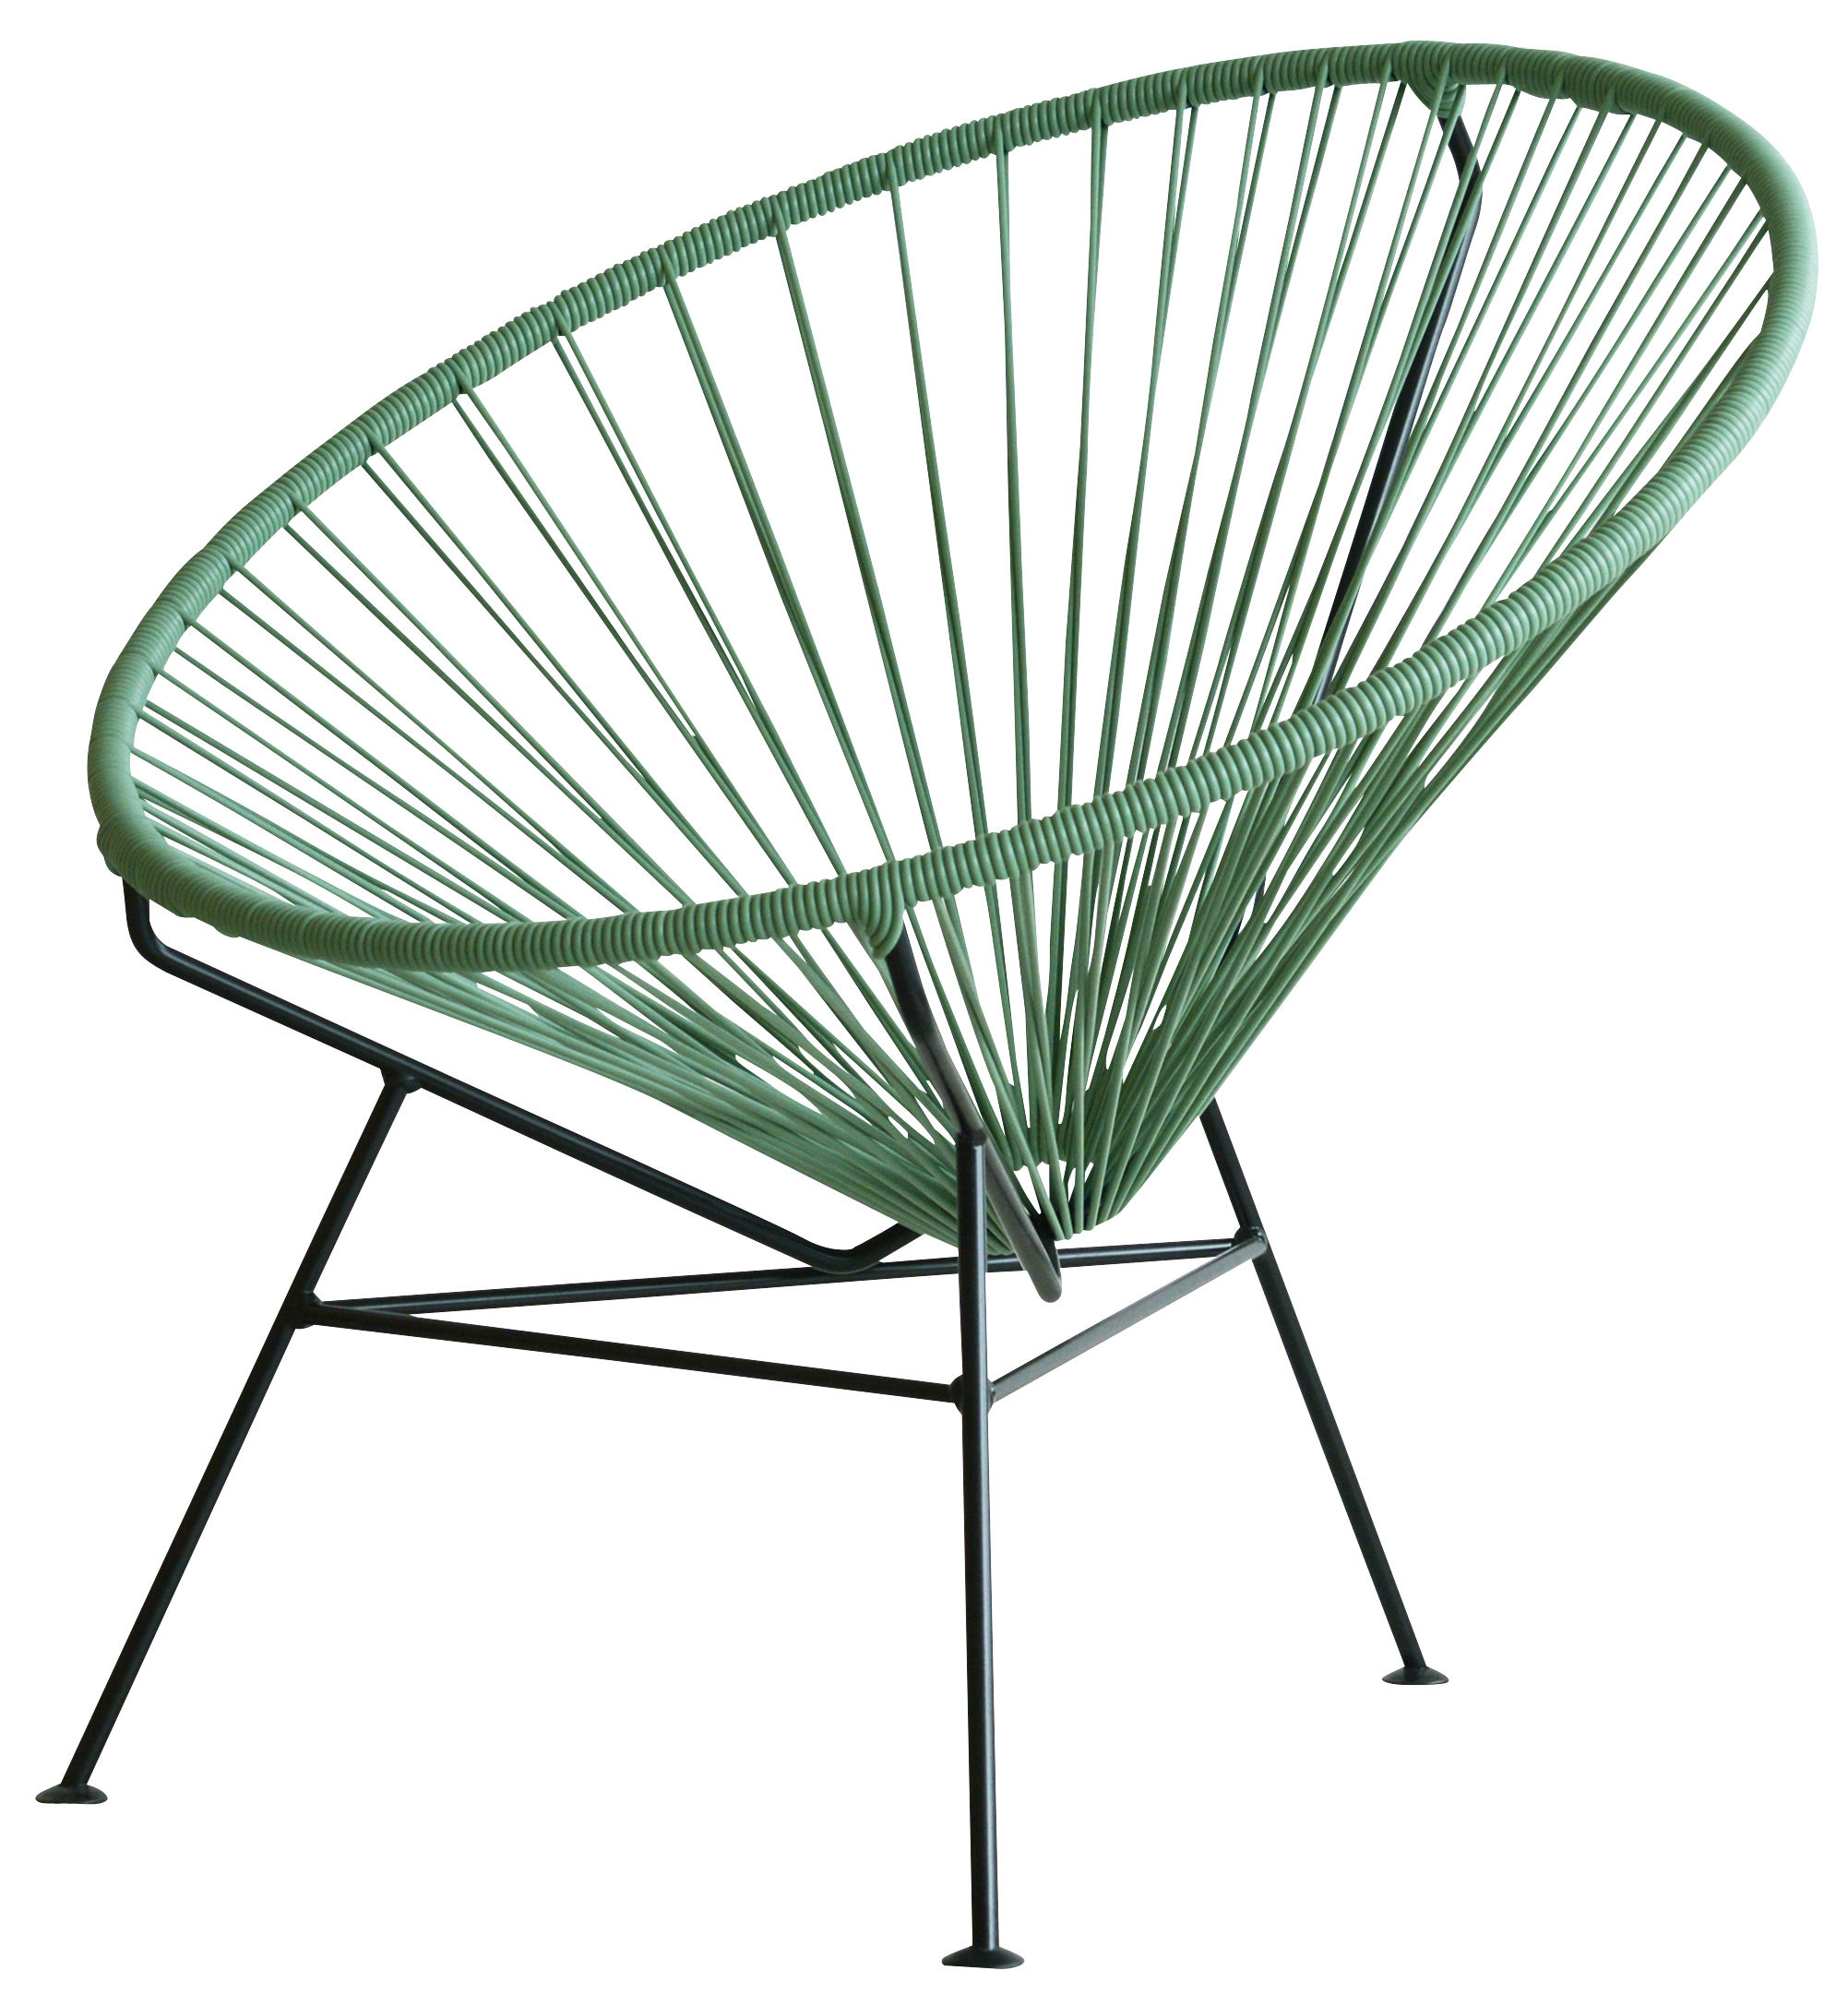 Furniture - Armchairs - Condesa Low armchair by OK Design pour Sentou Edition - Ocean green - Lacquered steel, Plastic material